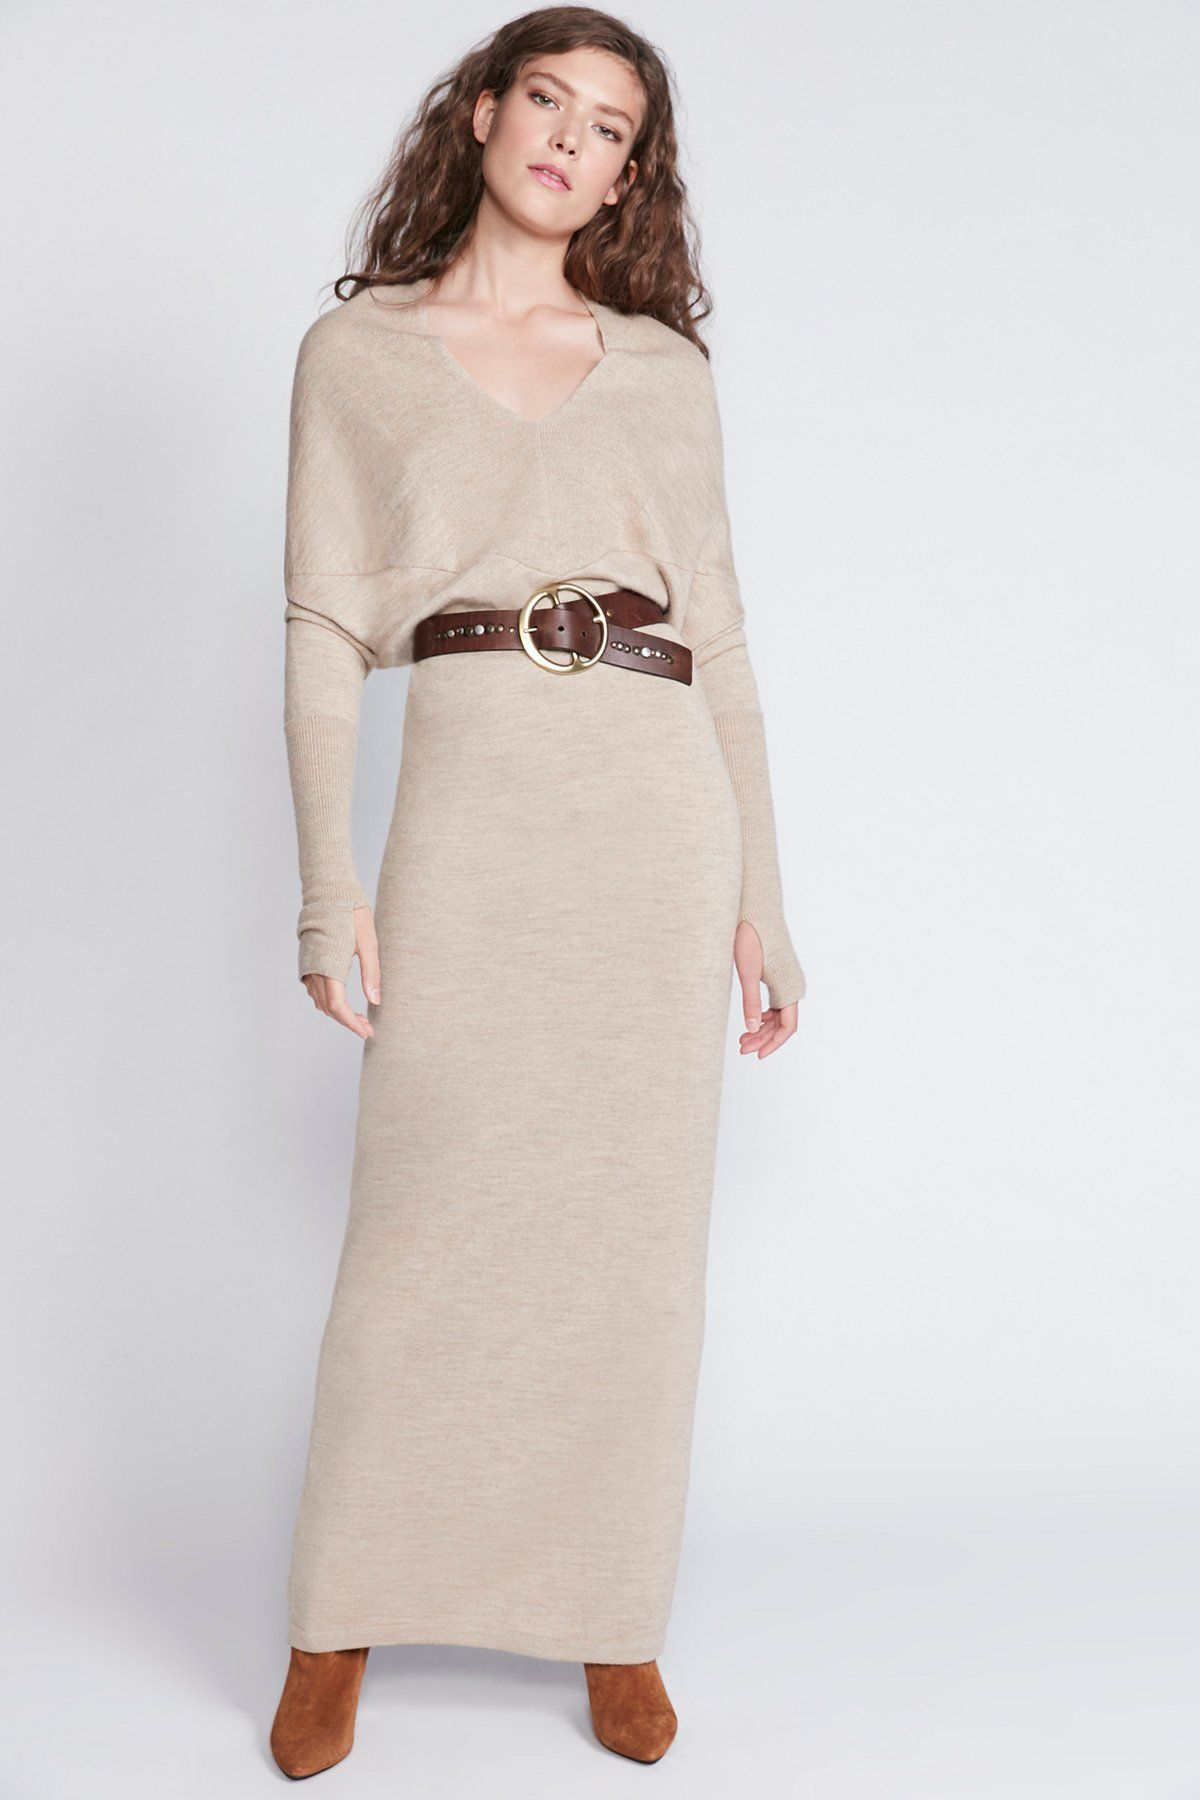 aadeacc5c6 Reversible Long Sweater Dress | Maxi sweater dress featured in a luxe  silk-alpaca blend. * Versatile neckline, can be worn as a V-neck or slouchy  ...